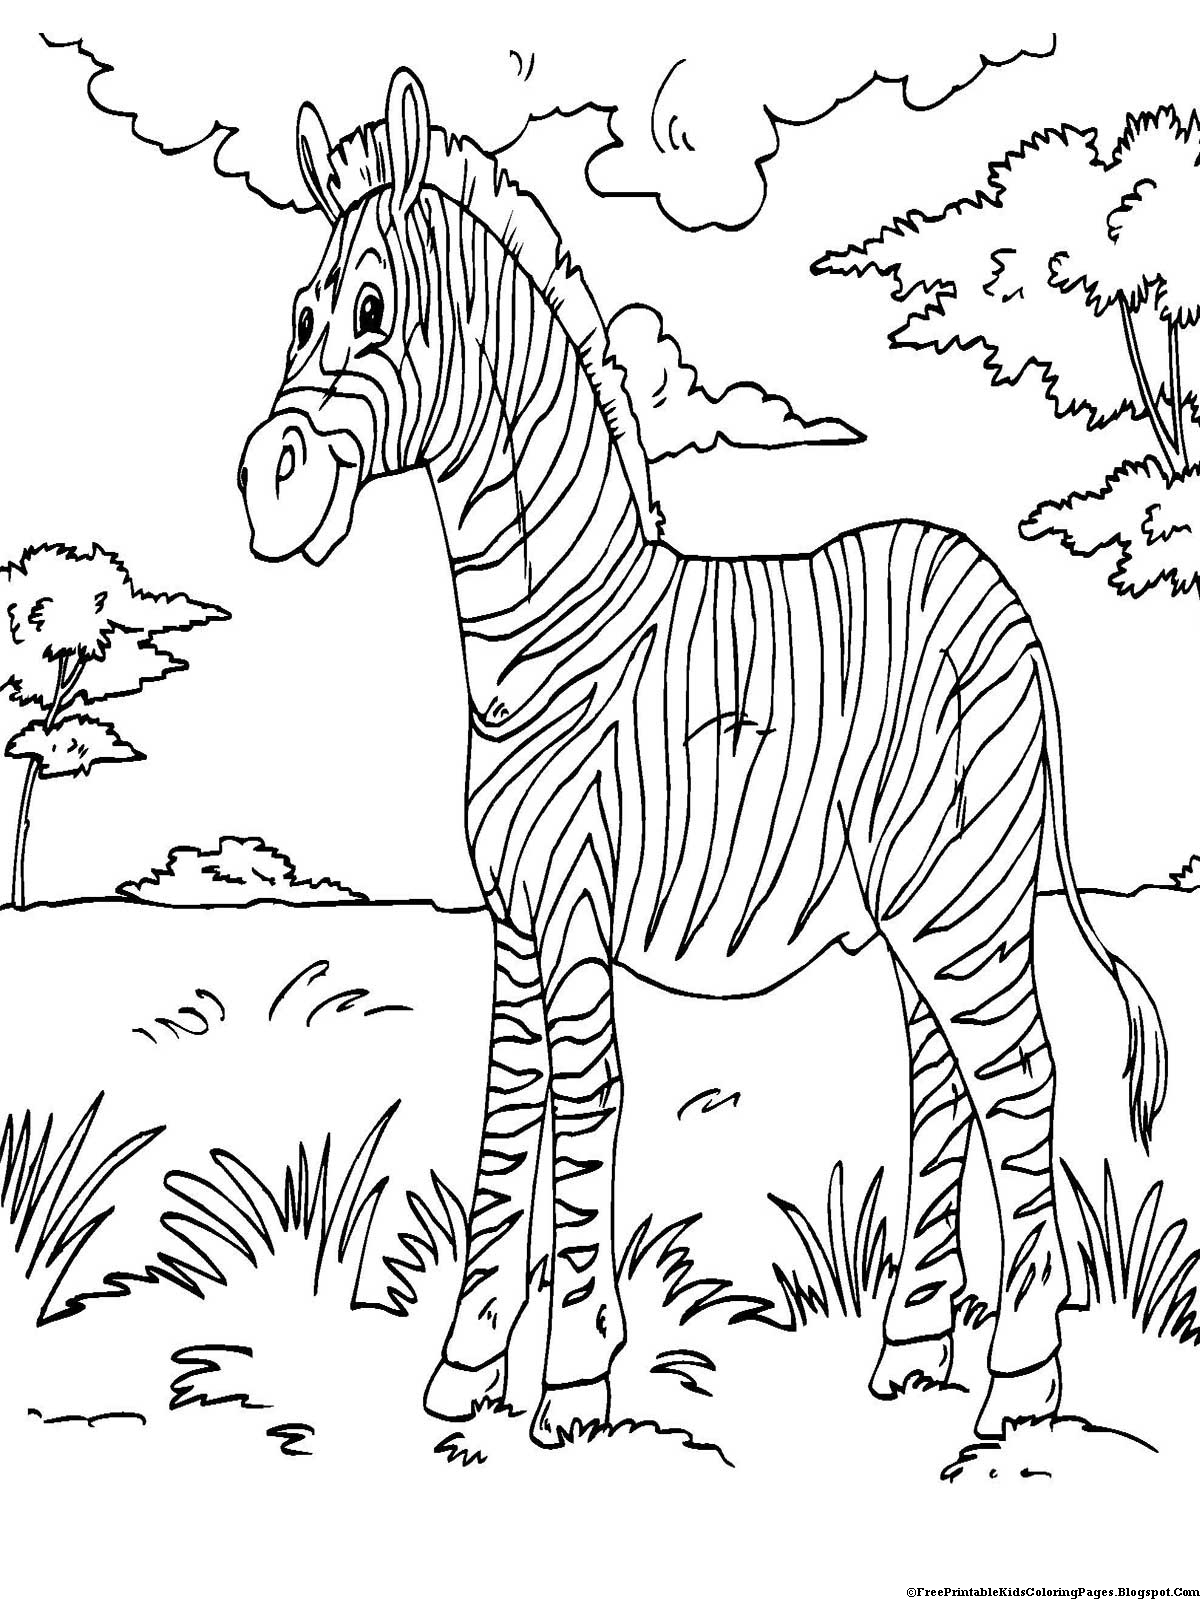 printable colouring pages zebra coloring pages free printable kids coloring pages printable pages colouring